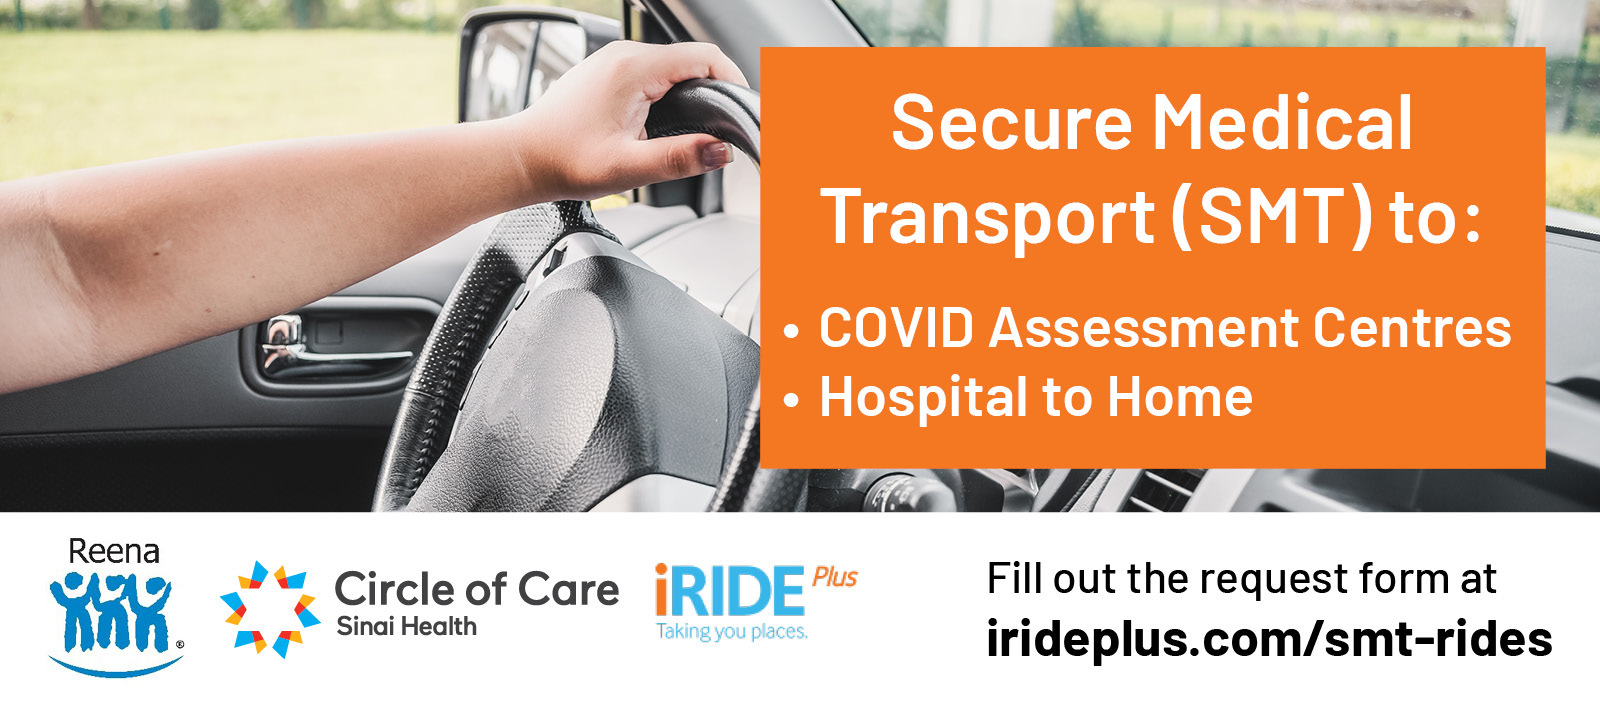 Secure Medical Transport (SMT) to COVID Assessment Centres and Hospital to Home